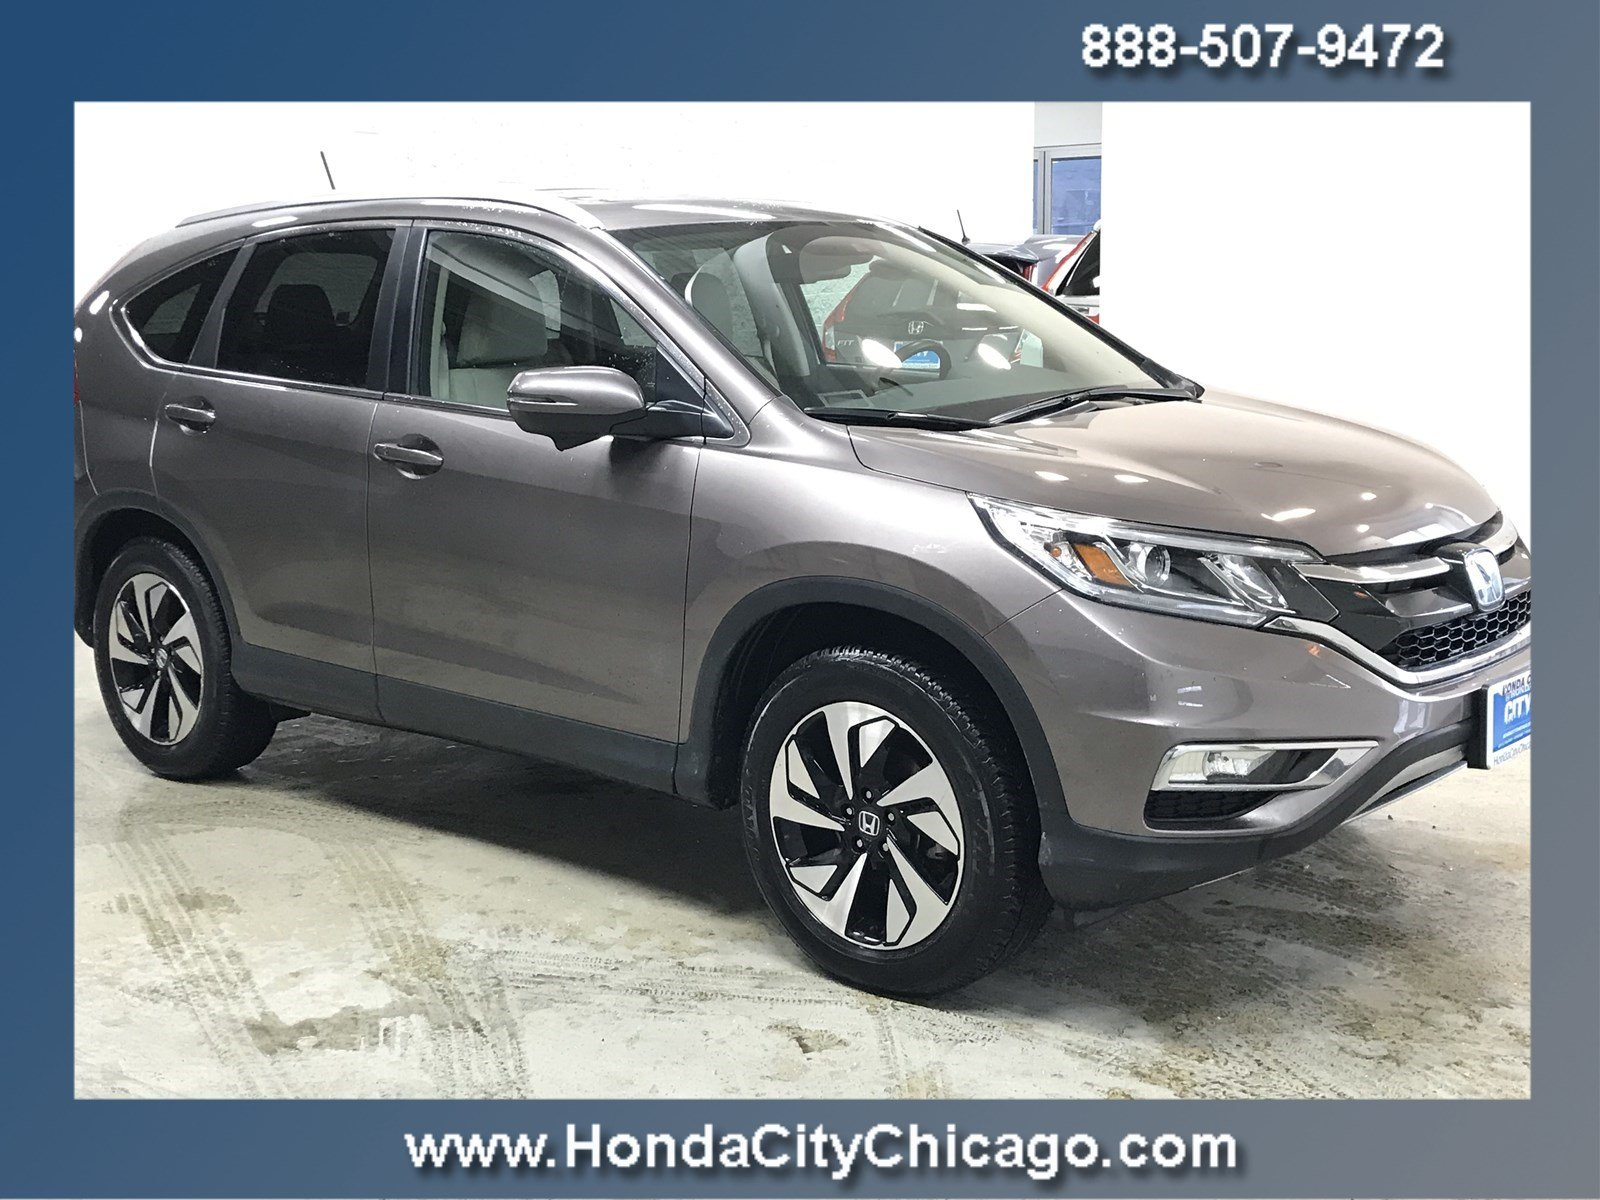 used 2016 honda cr v touring for sale in chicago, il near mortonused 2016 honda cr v touring for sale chicago, illinois